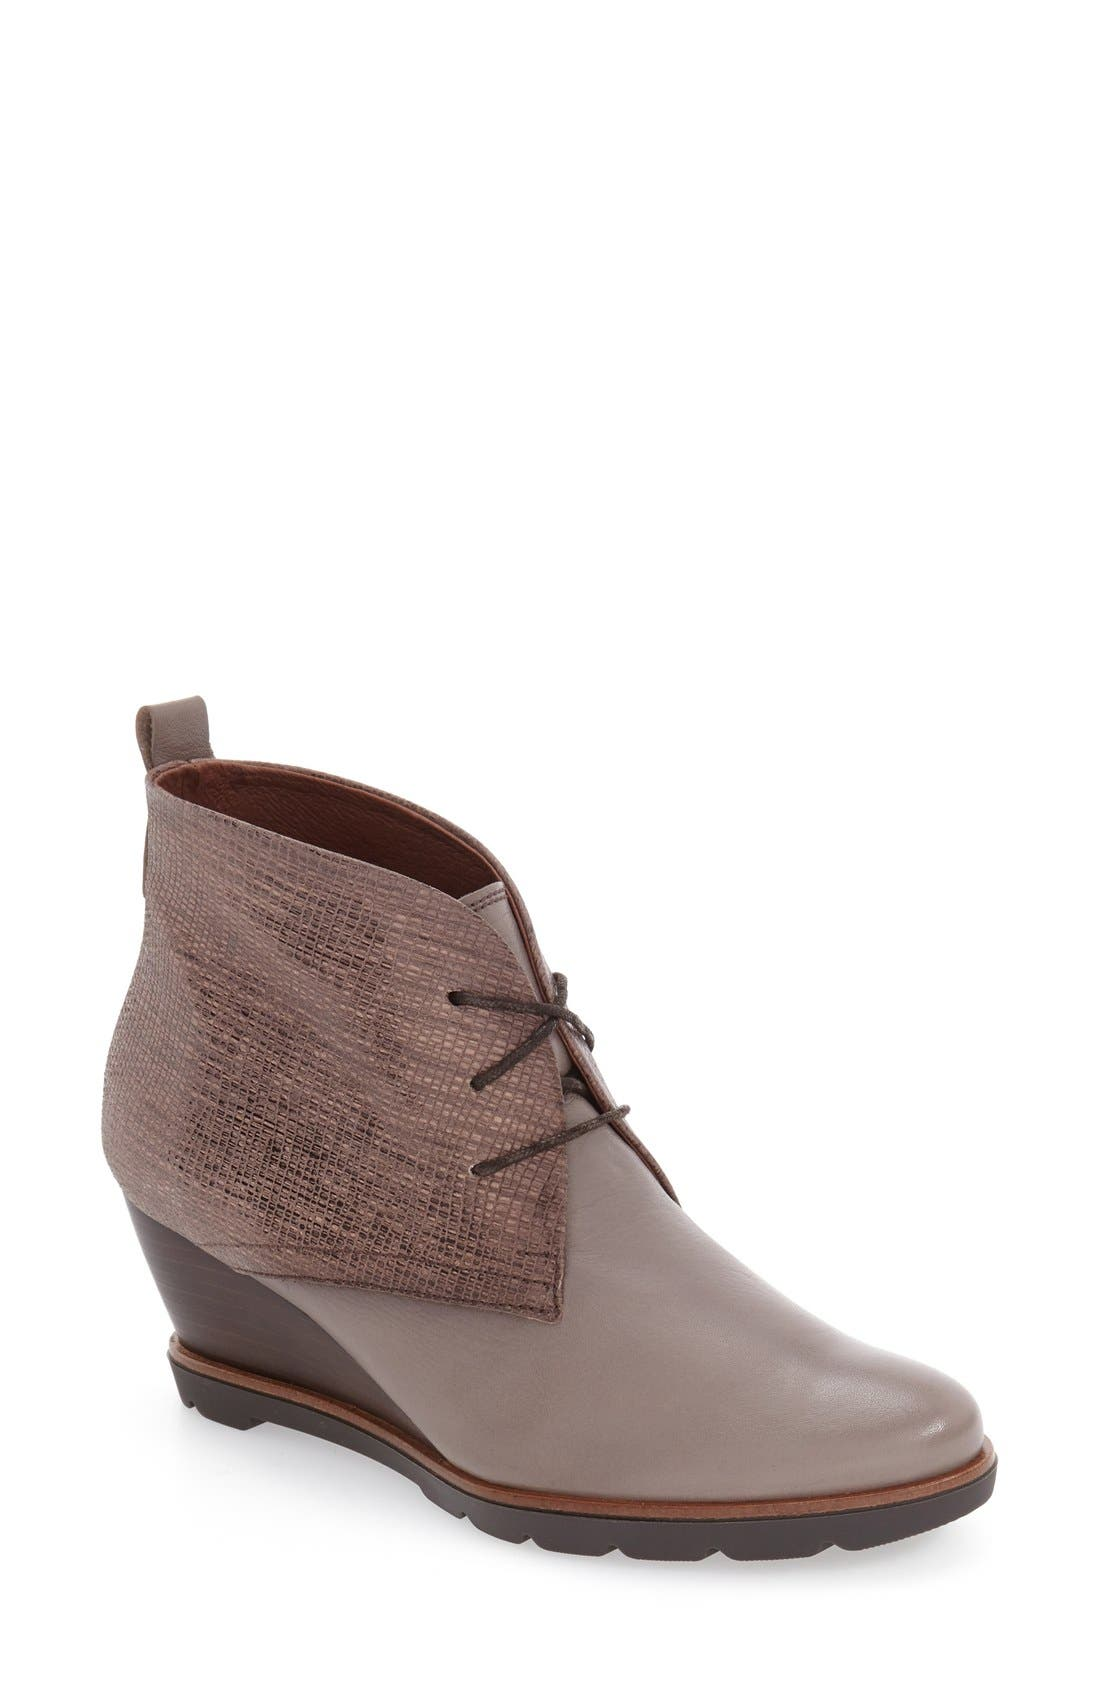 'Harmonie' Lace-Up Wedge Bootie,                         Main,                         color, Brown Leather